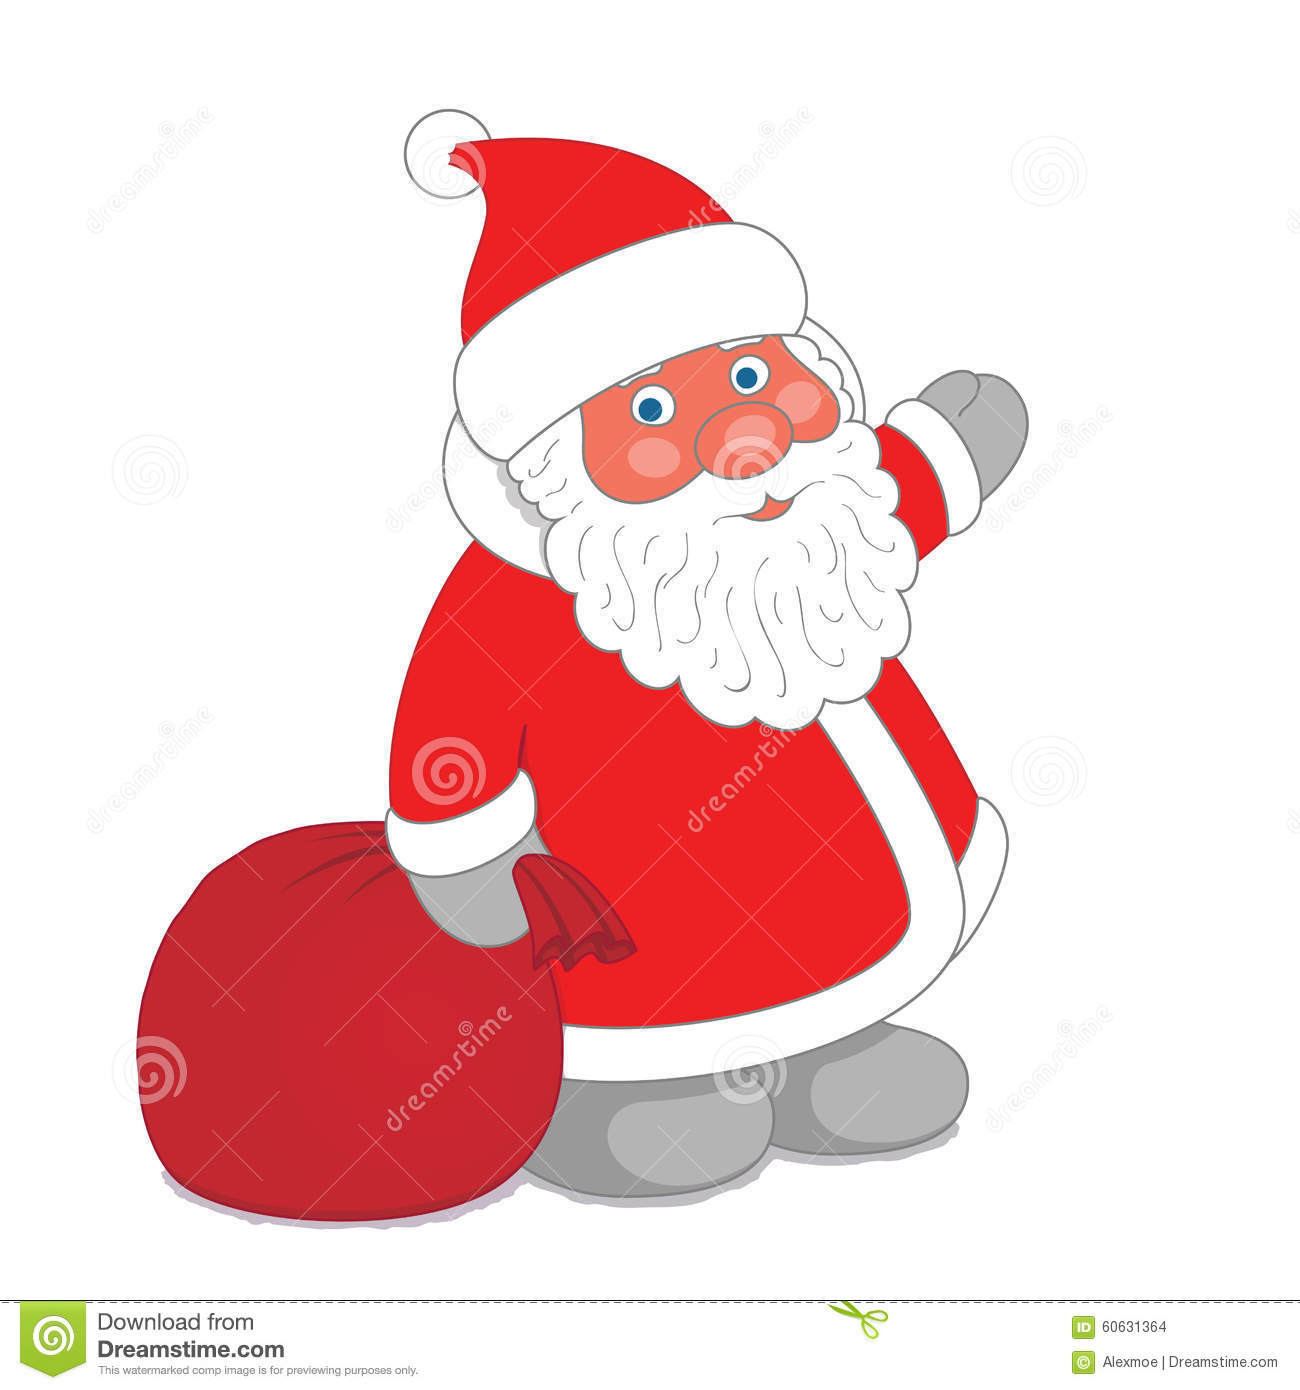 Dwarf Santa Claus With Sack Of Gifts Stock Vector - Illustration of ...